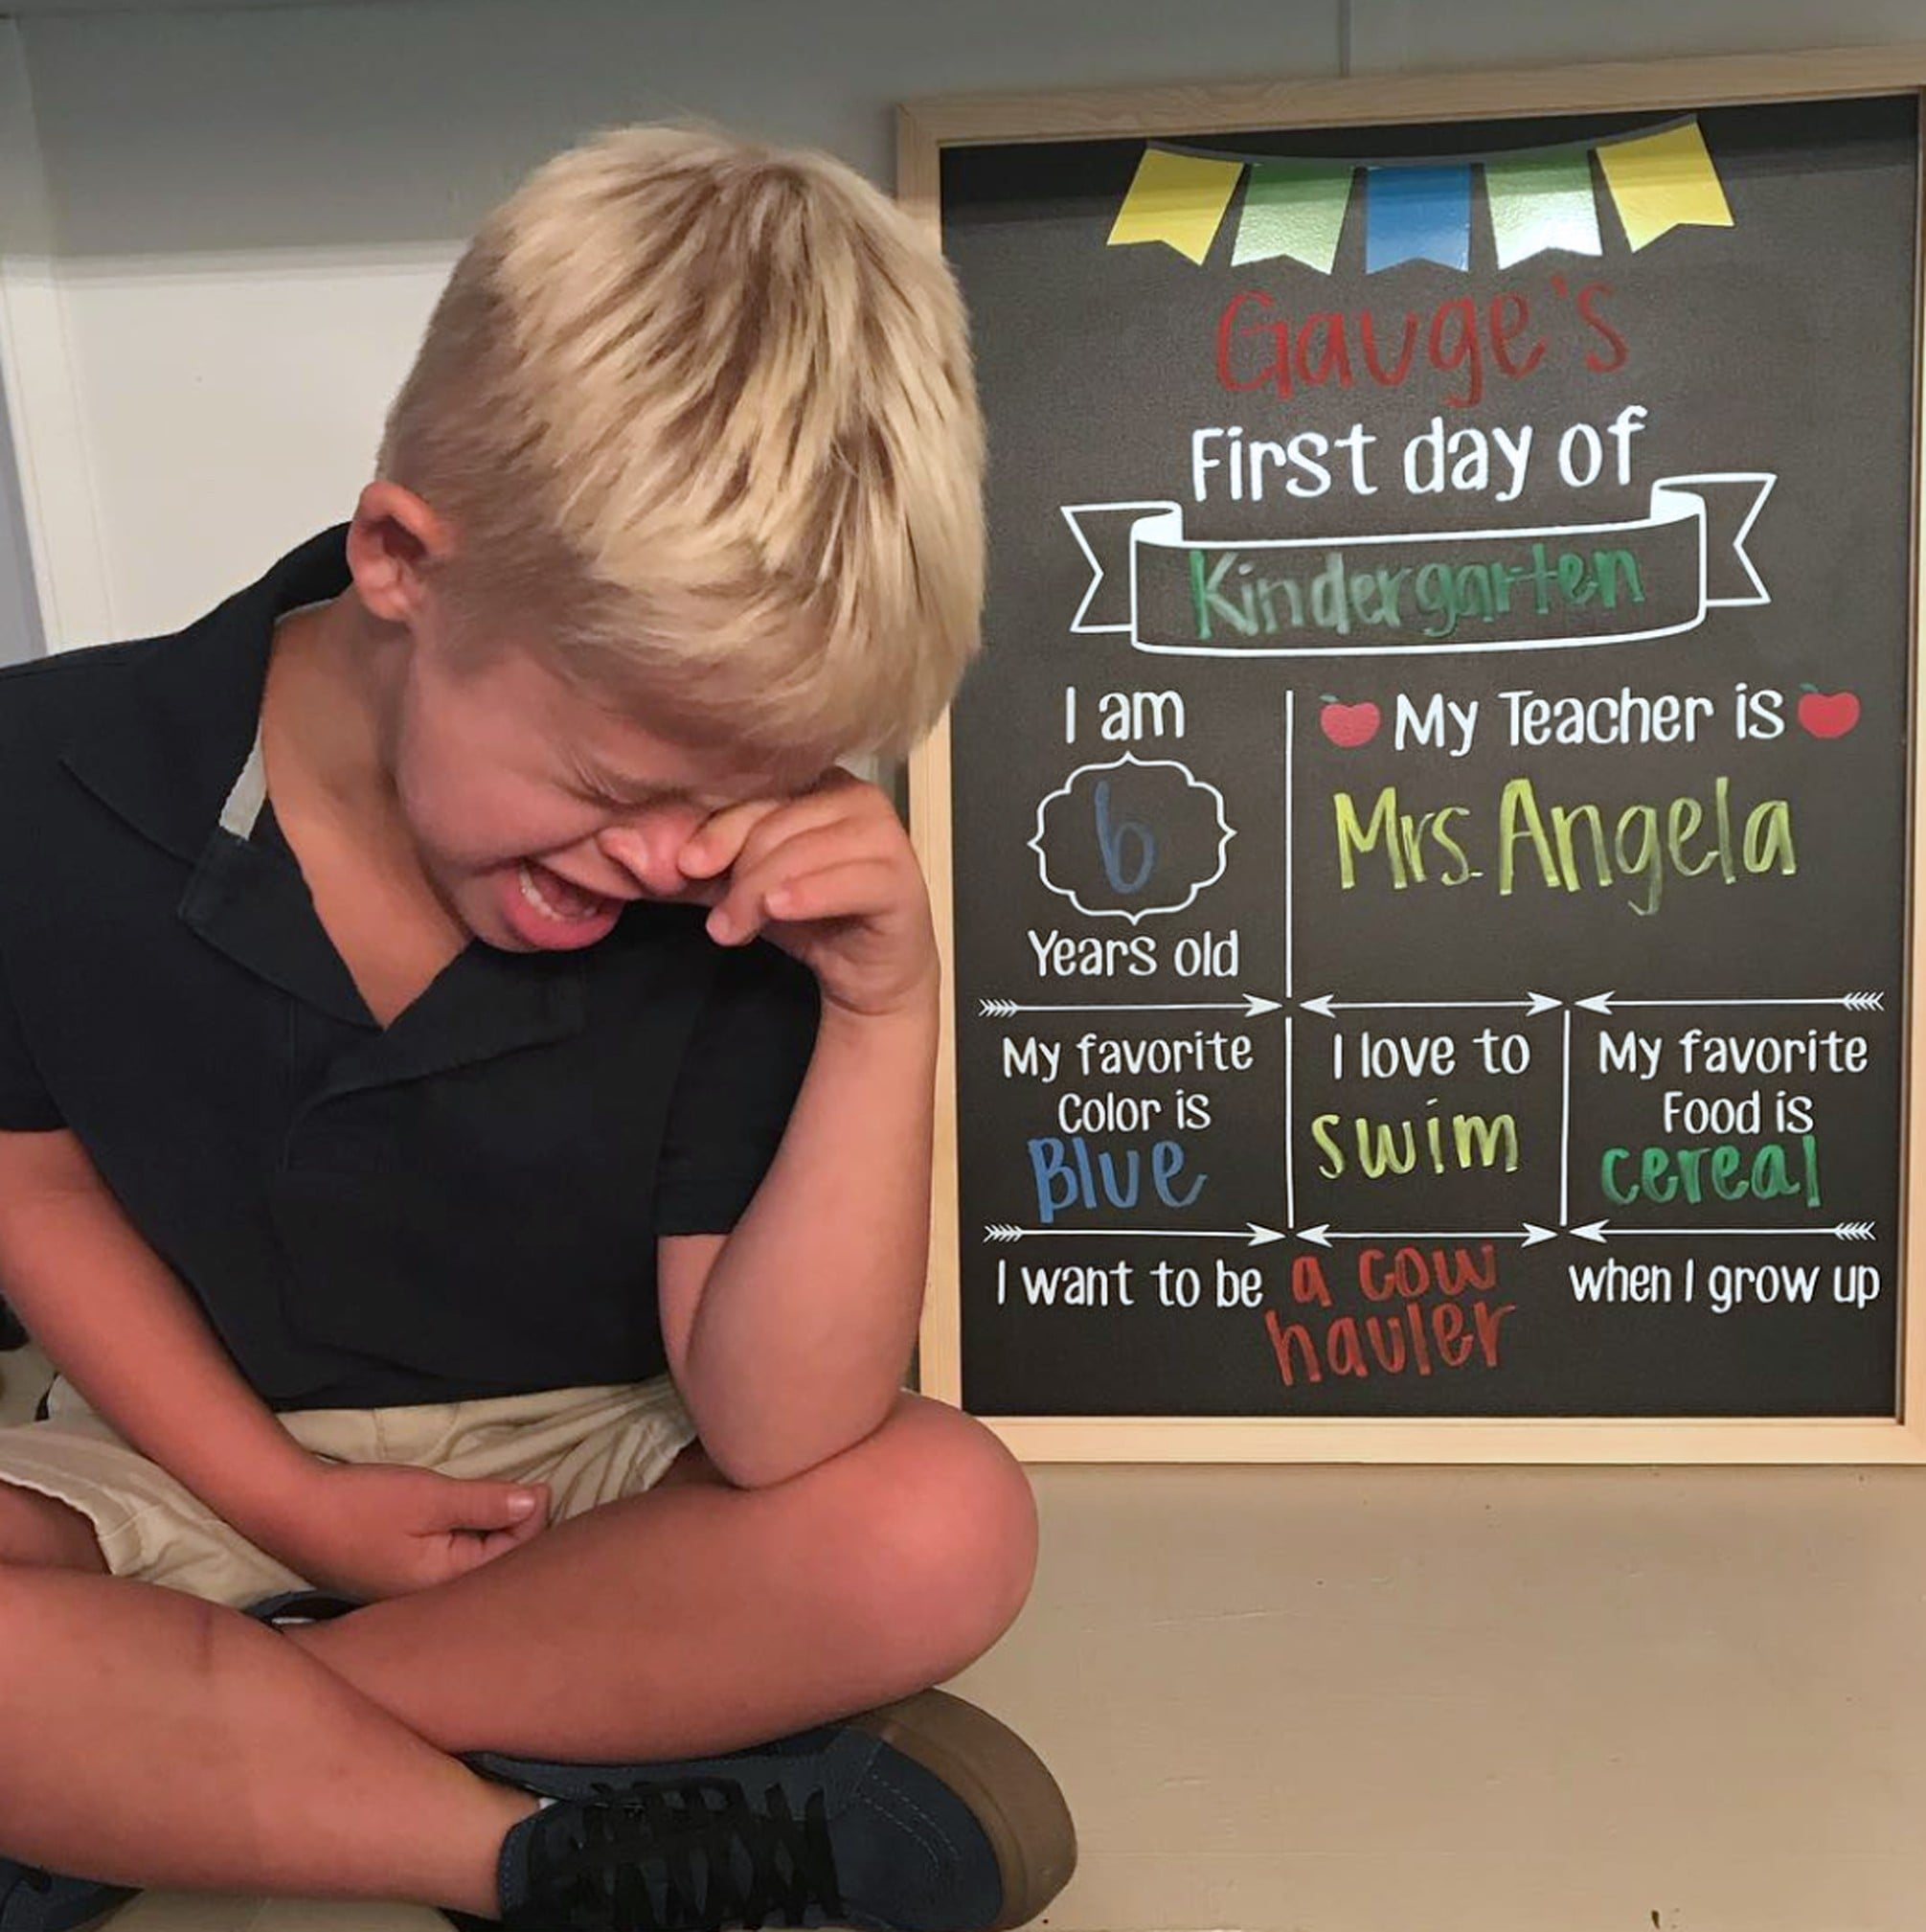 Funny First Day Of School Photos Popsugar Family